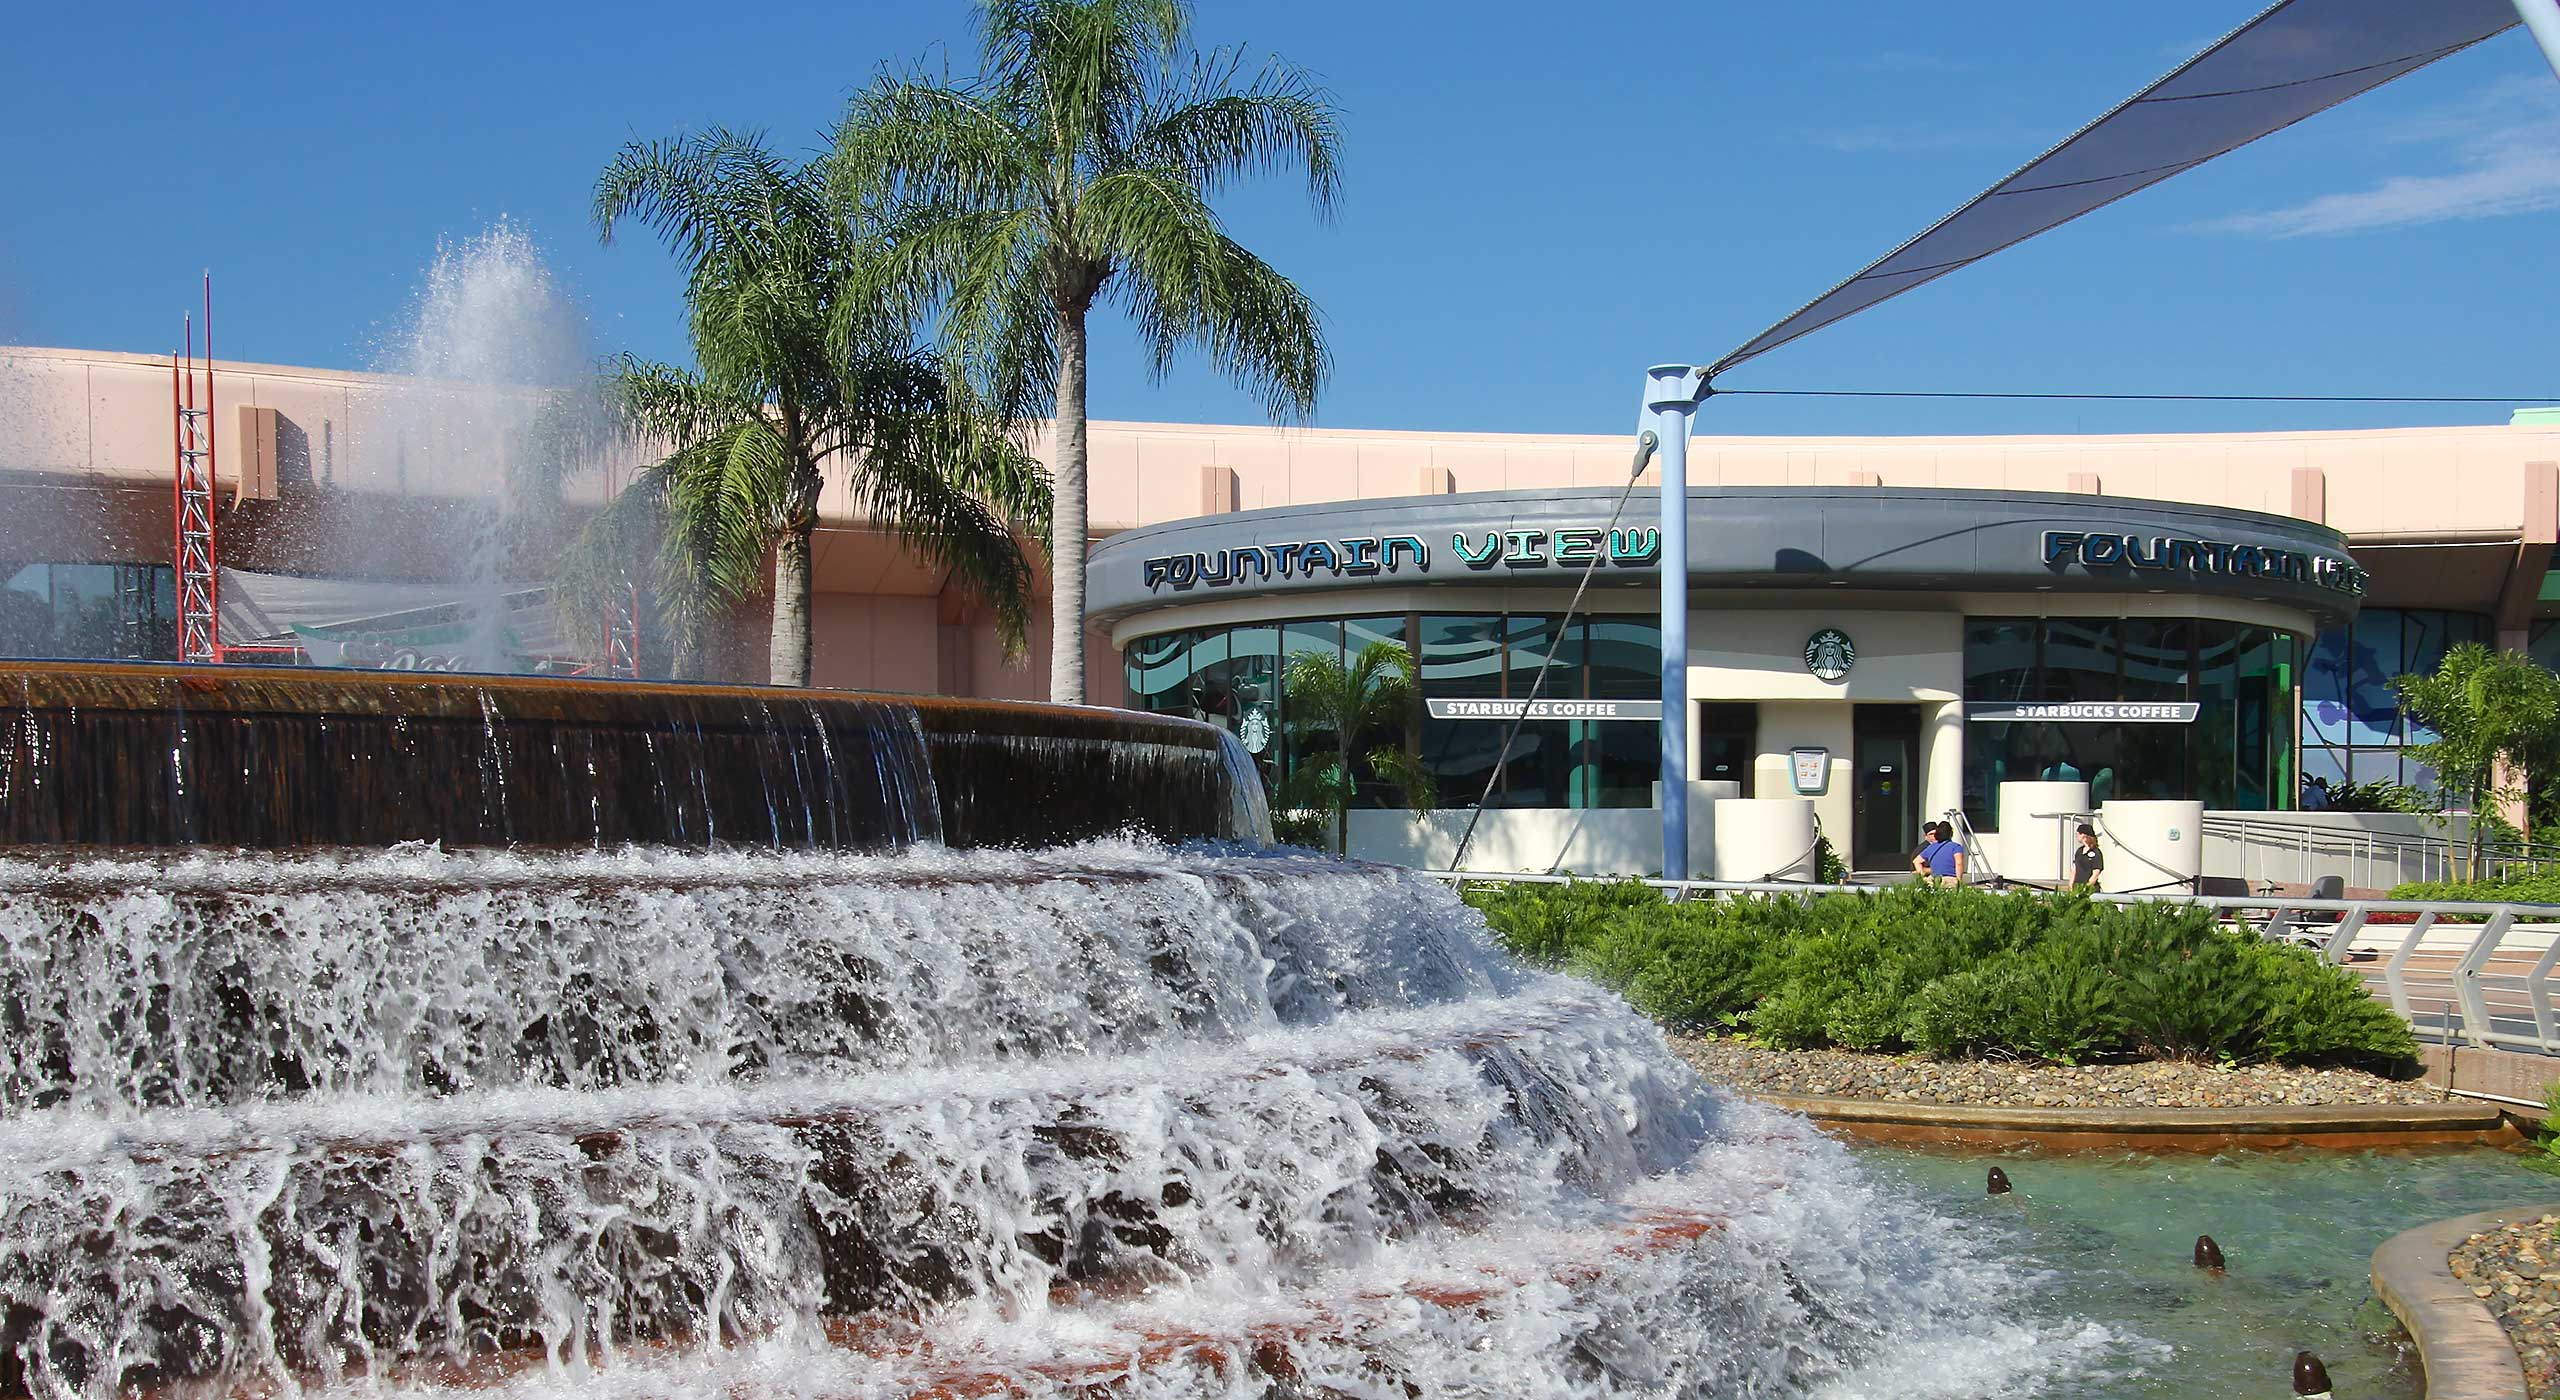 Epcot's Fountain View